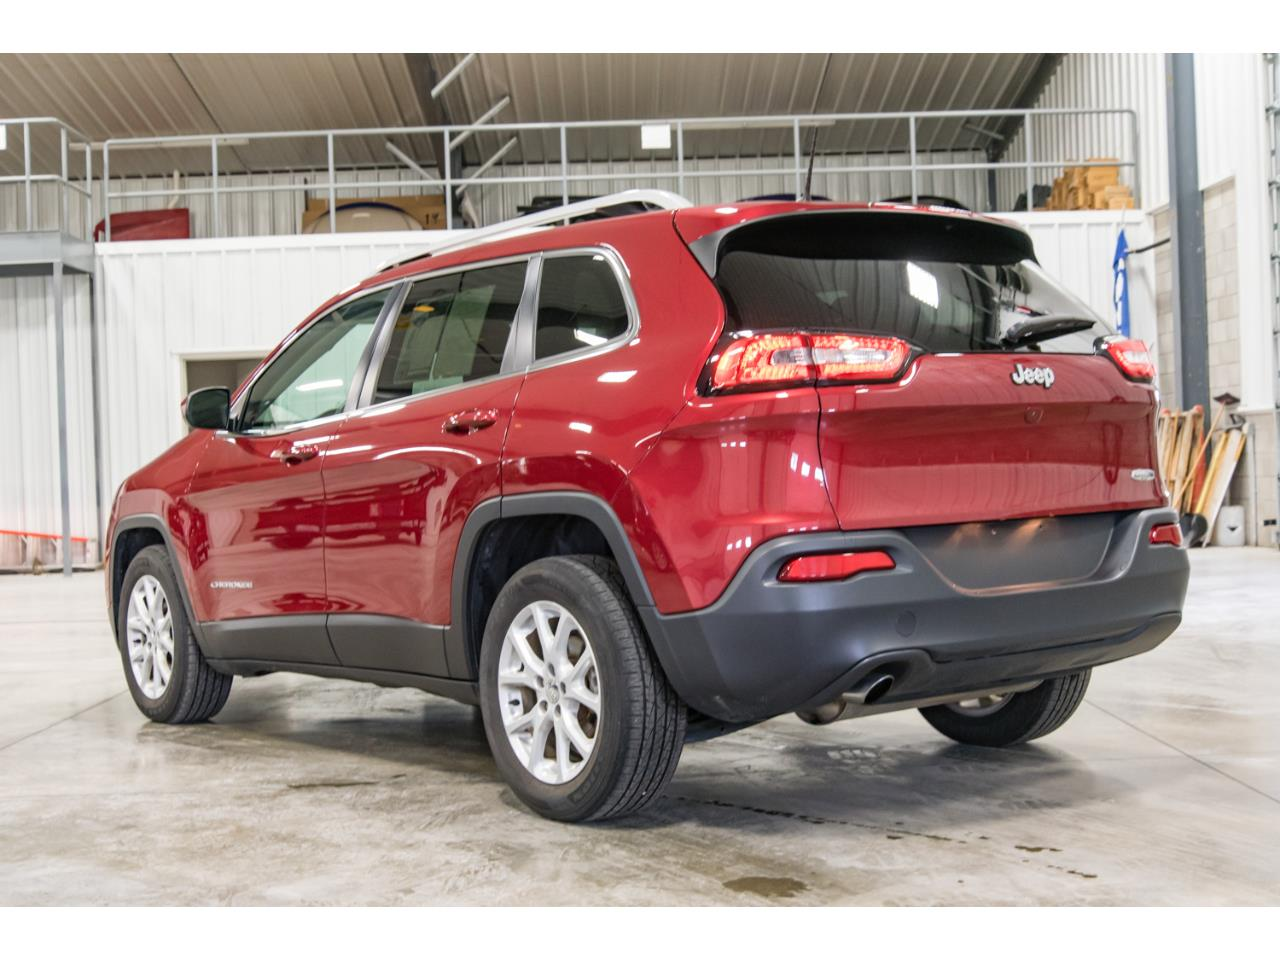 Large Picture of '16 Cherokee located in Ohio Offered by John Kufleitner's Galleria - MJWQ